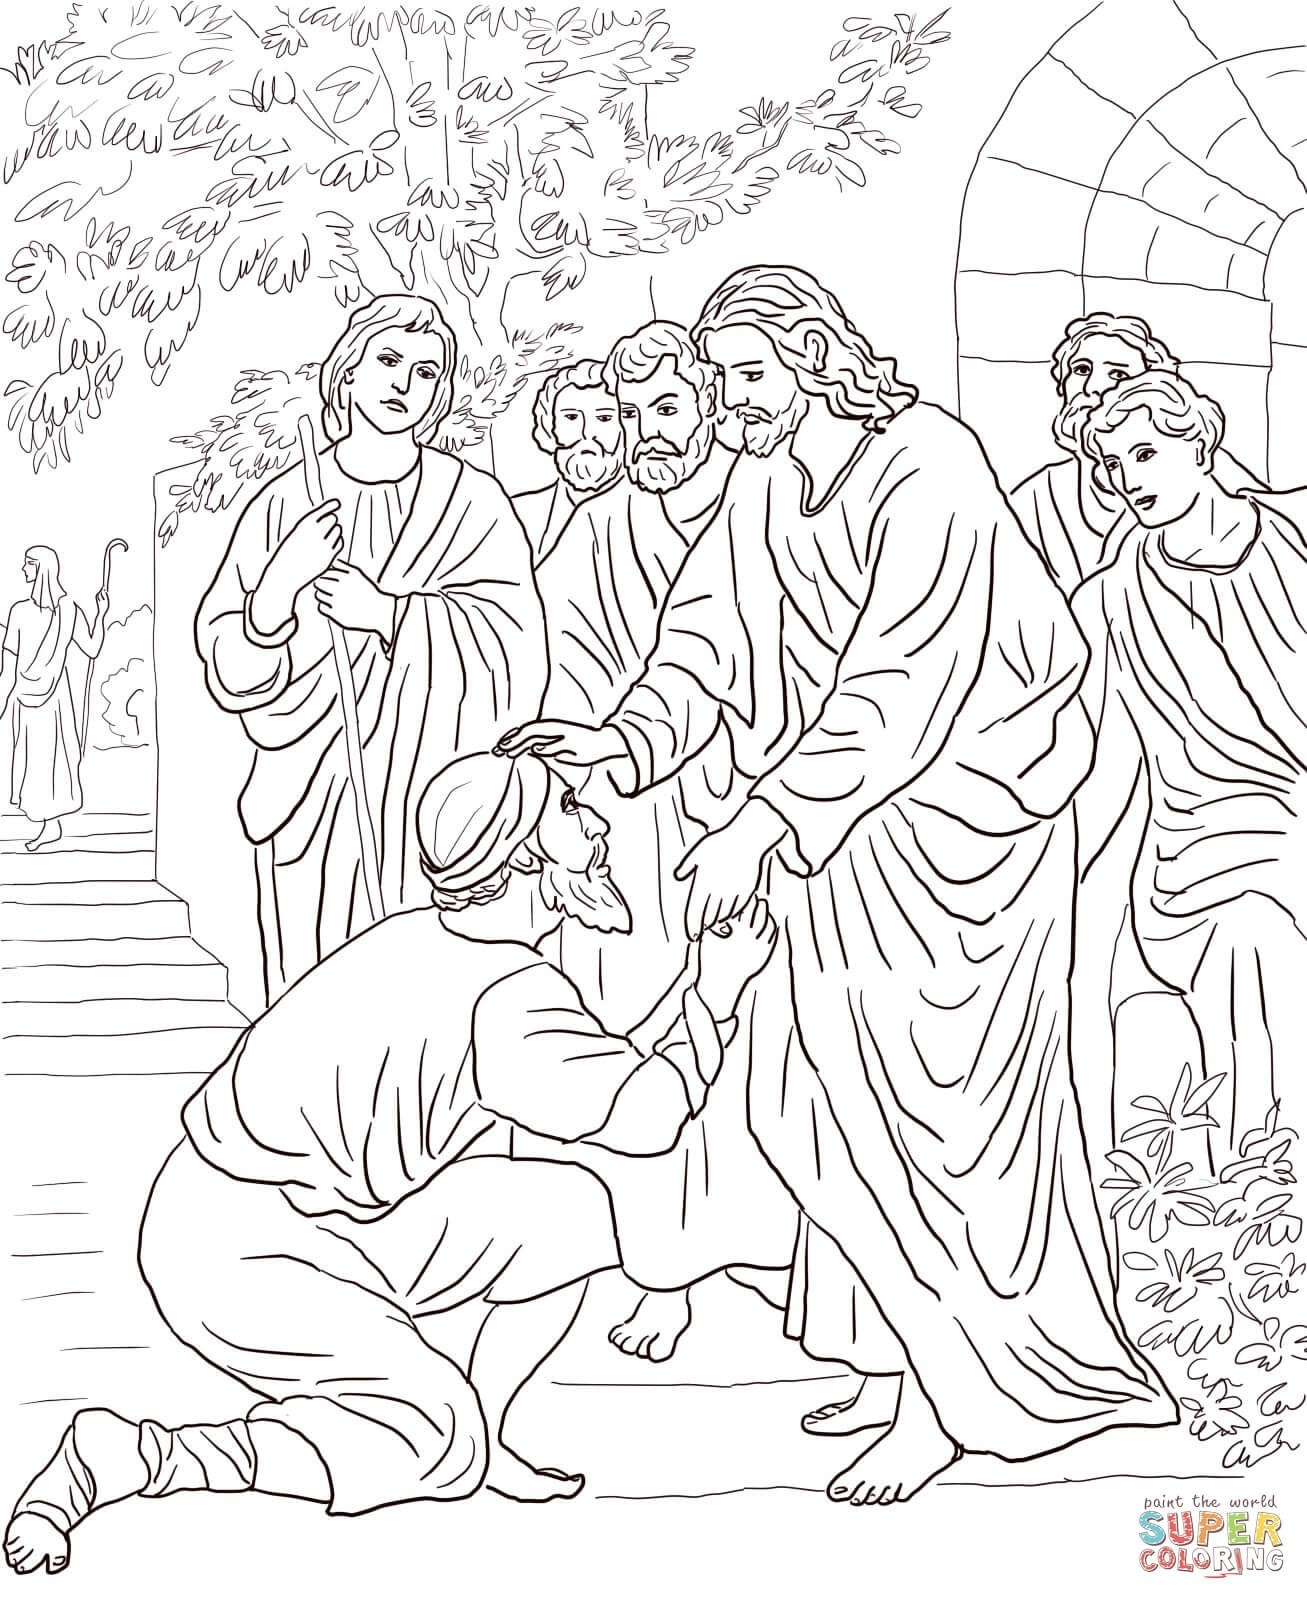 jesus miracles coloring pages Download-Jesus miracles coloring pages best of brilliant free png 1307x1600 Jesus first miracle coloring pages 20-i